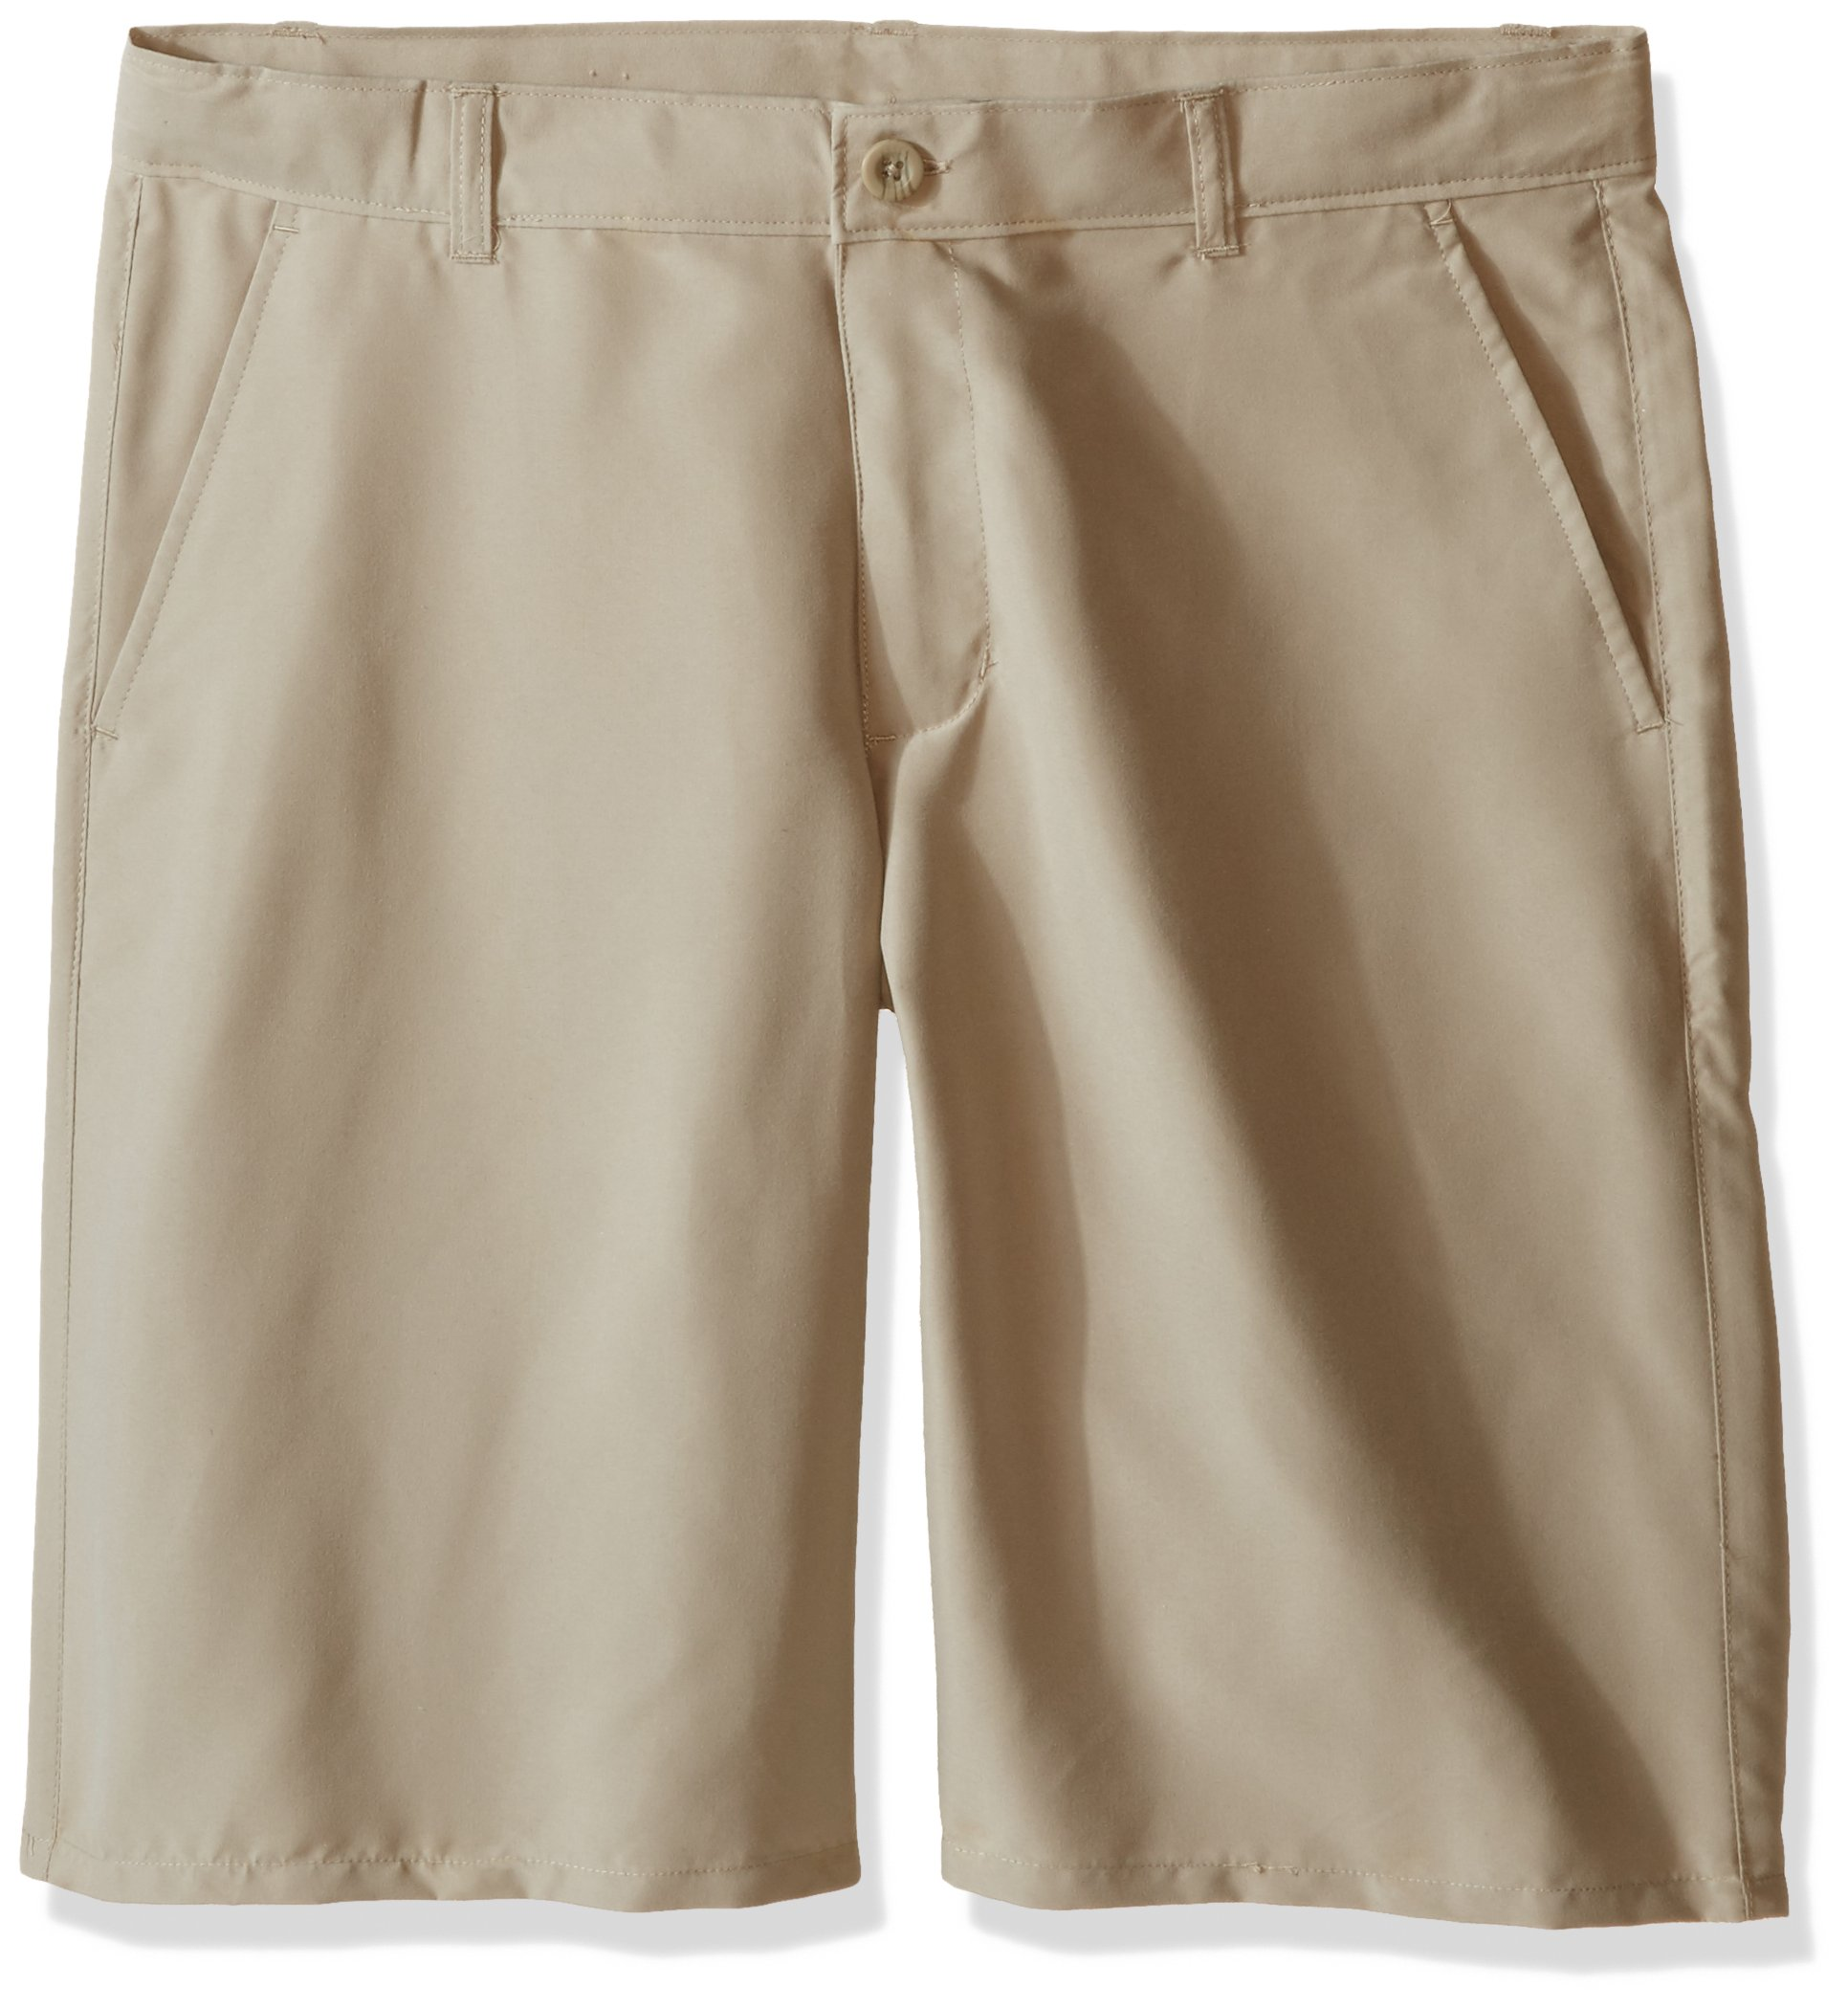 Nautica Boys' Little Boys' Uniform Performance Short, Khaki, 6